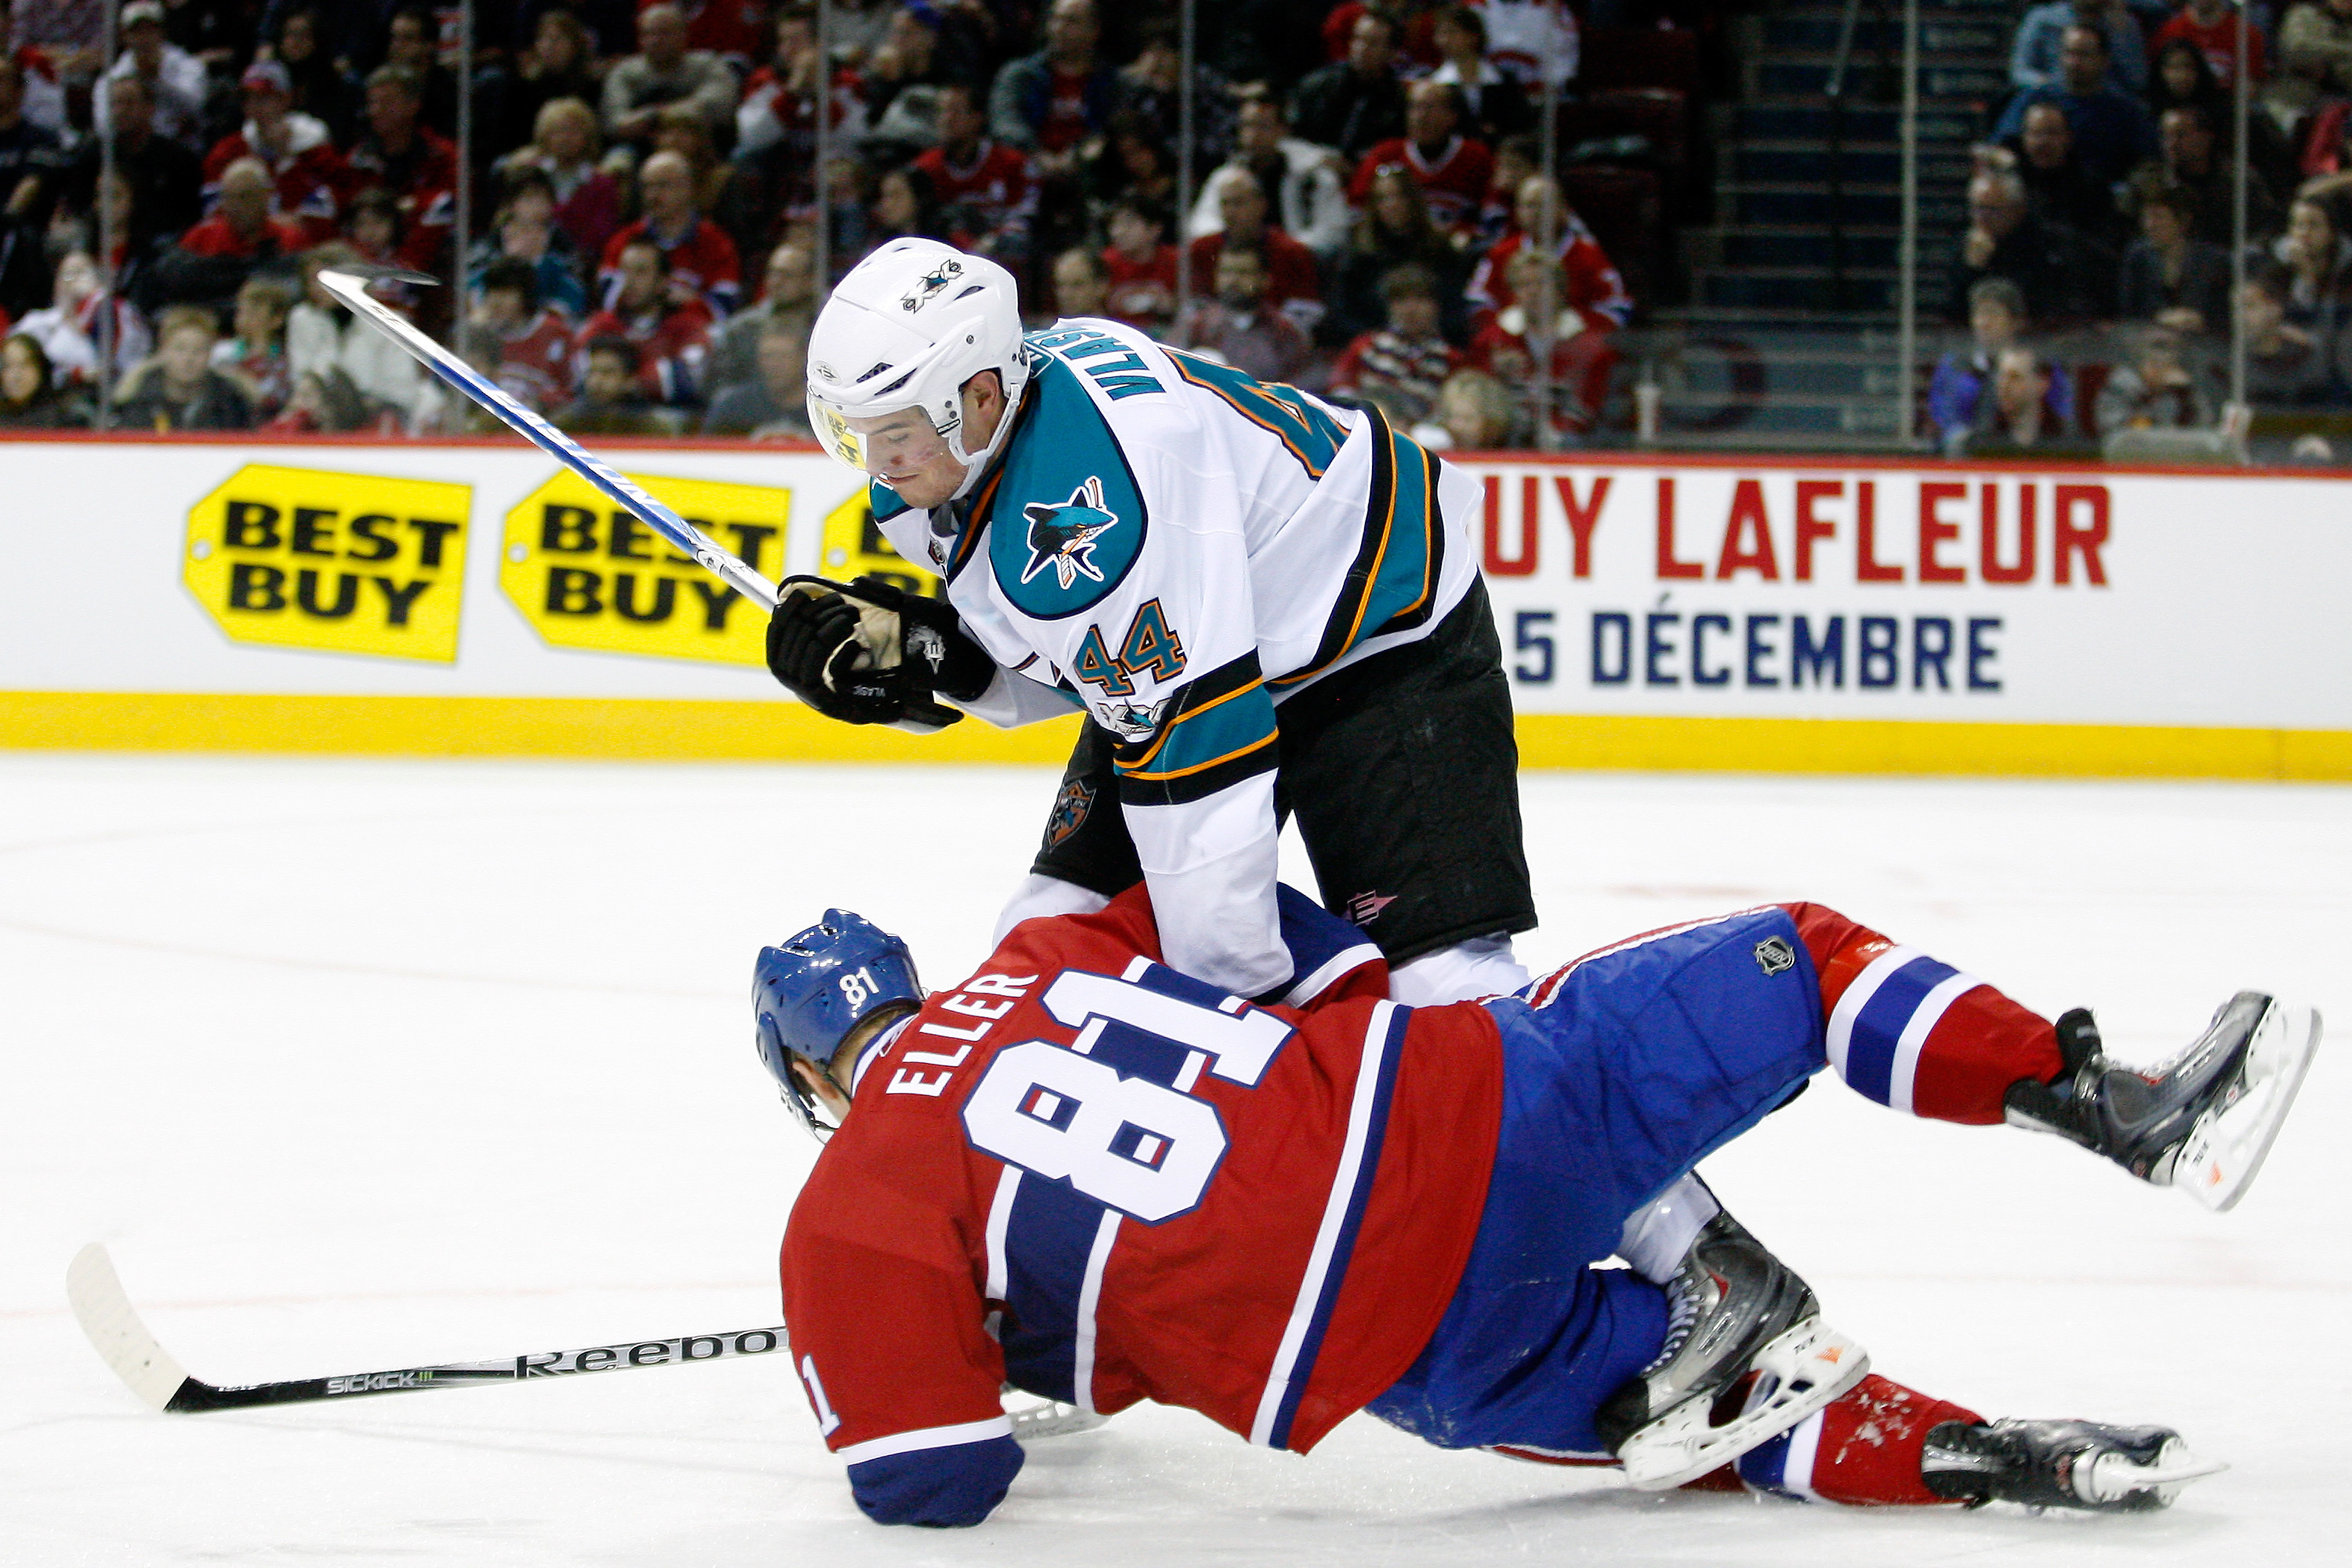 MONTREAL- DECEMBER 4:  Marc-Edouard Vlasic #44 of the San Jose Sharks body checks Lars Eller #81 of the Montreal Canadiens during the NHL game at the Bell Centre on December 4, 2010 in Montreal, Quebec, Canada.  The Canadiens defeated the Sharks 3-1.  (Ph